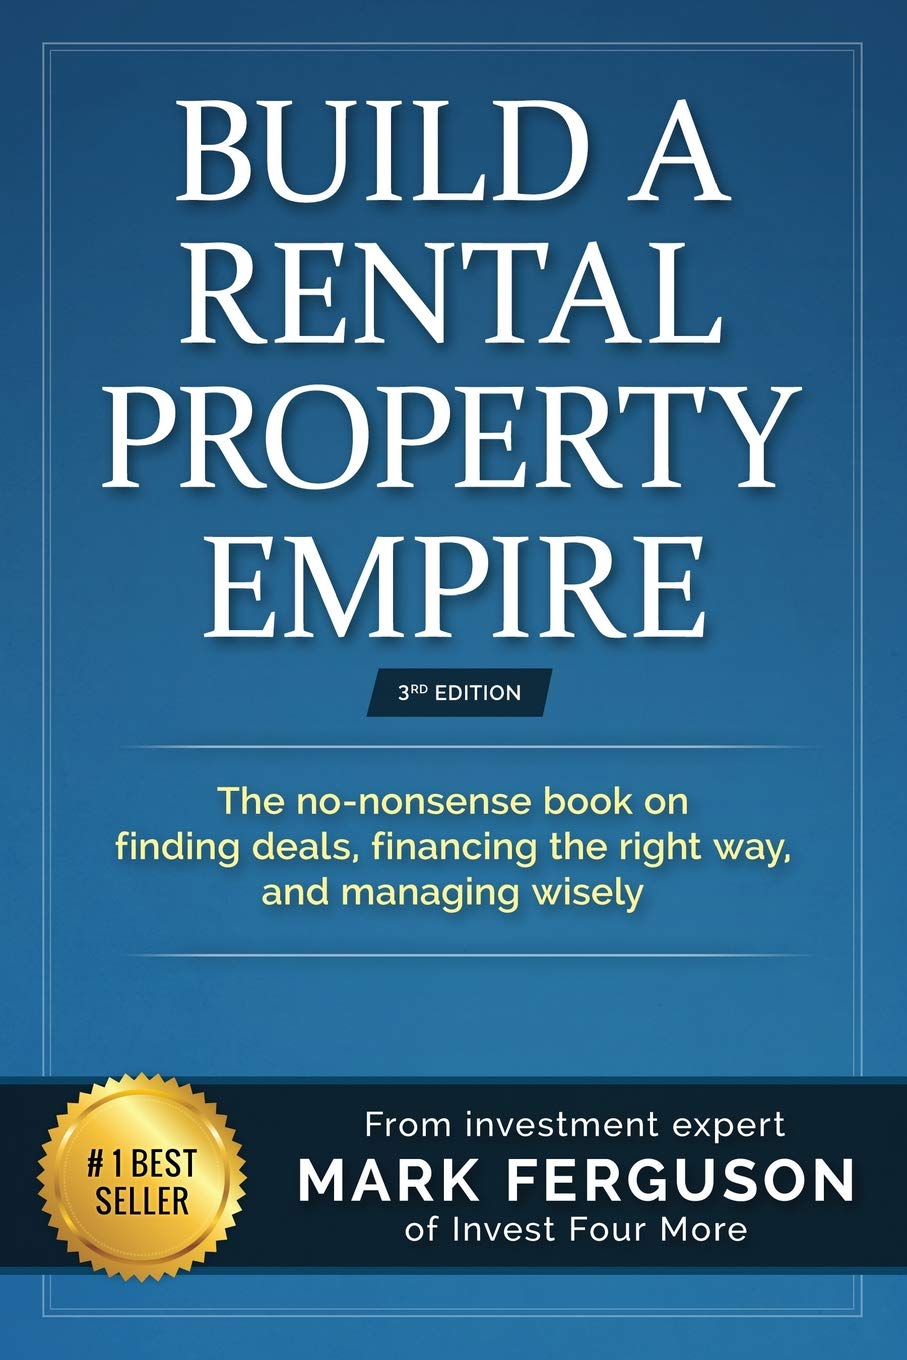 Build a Rental Property Empire: The no-nonsense book on finding deals,  financing the right way, and managing wisely.: Mark Ferguson, Lynda  Pelissier: ...